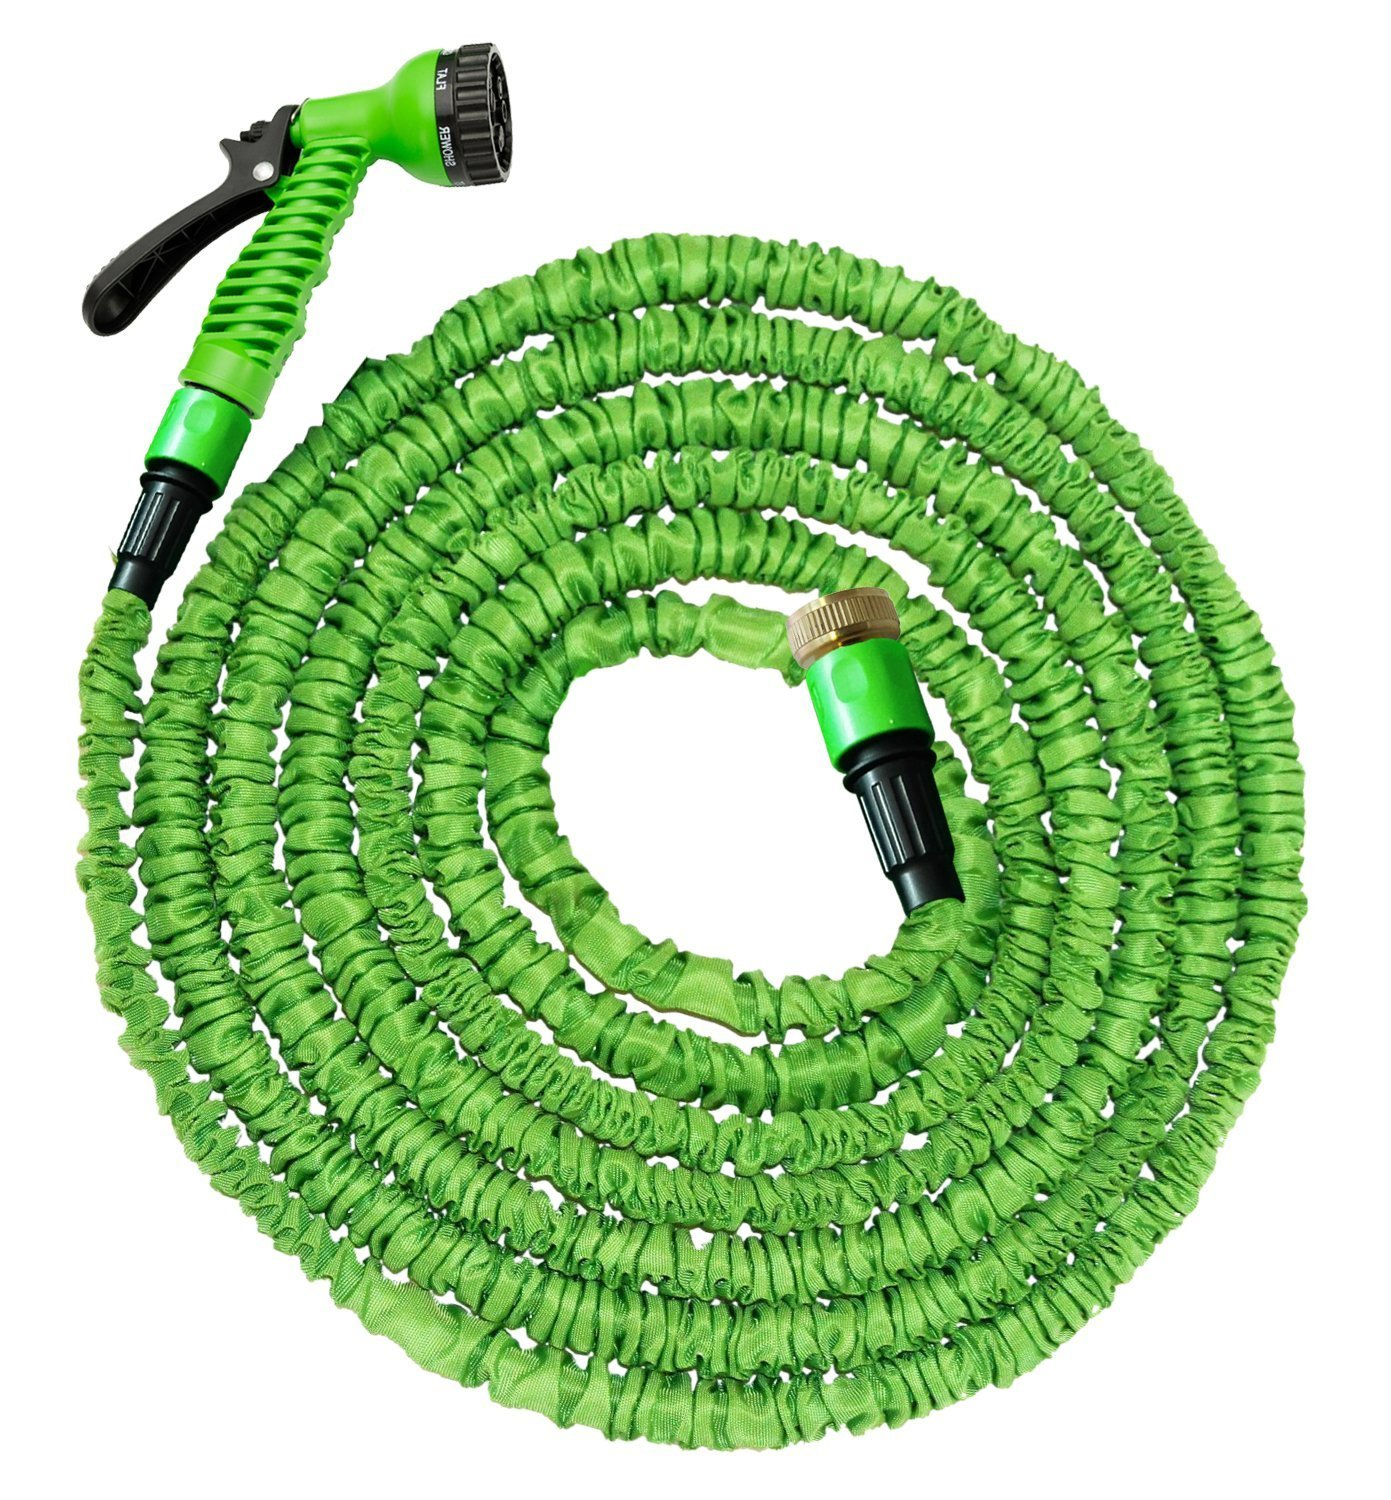 50FT GARDEN HOSE PIPE | SUPER LIGHT WEIGHT HOSE PIPE | 7 SETTING SPRAY NATURAL TRIPLE LAYER LATEX | EXPANDING HOSE UPTO 15 METERS (50FT) | MAGIC HOSE 1 YEAR FREE REPLACEMENT WARRANTY! MH DISTRIBUTIONS LTDWARRANTY!